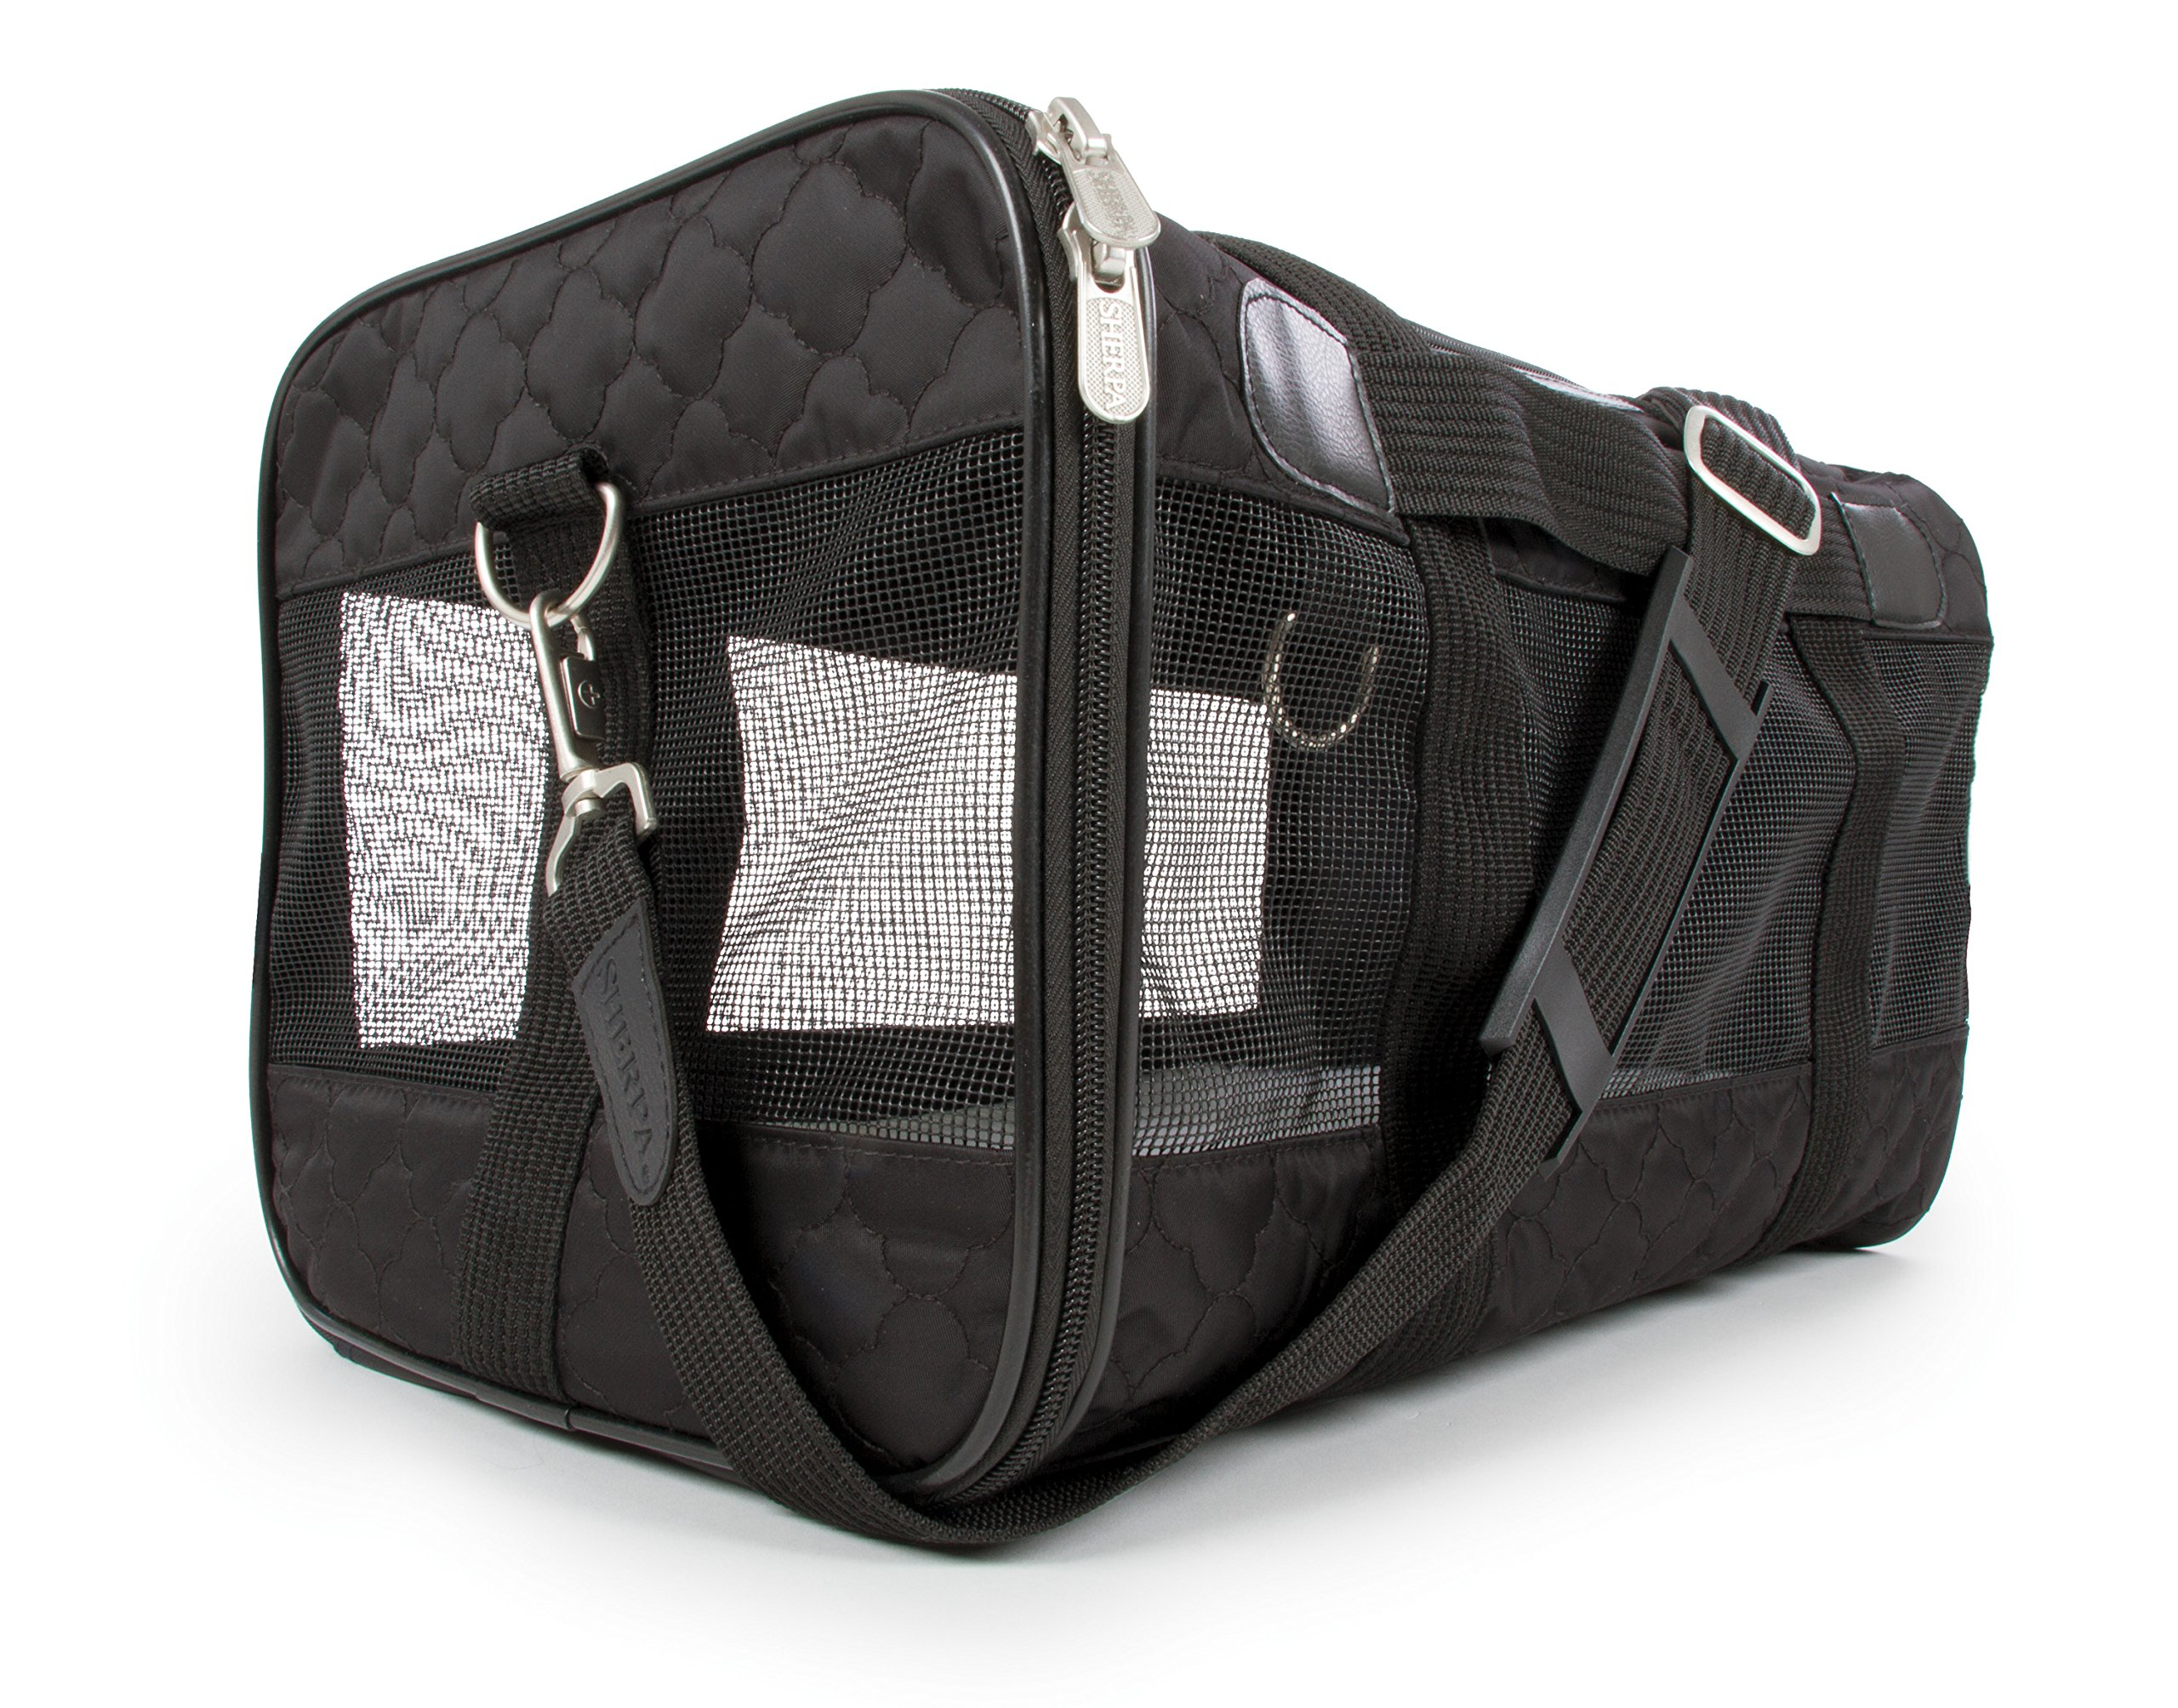 Sherpa Travel Original Deluxe Airline Approved Pet Carrier, Black Lattice Stitching, Medium (Frustration Free Packaging) by Sherpa